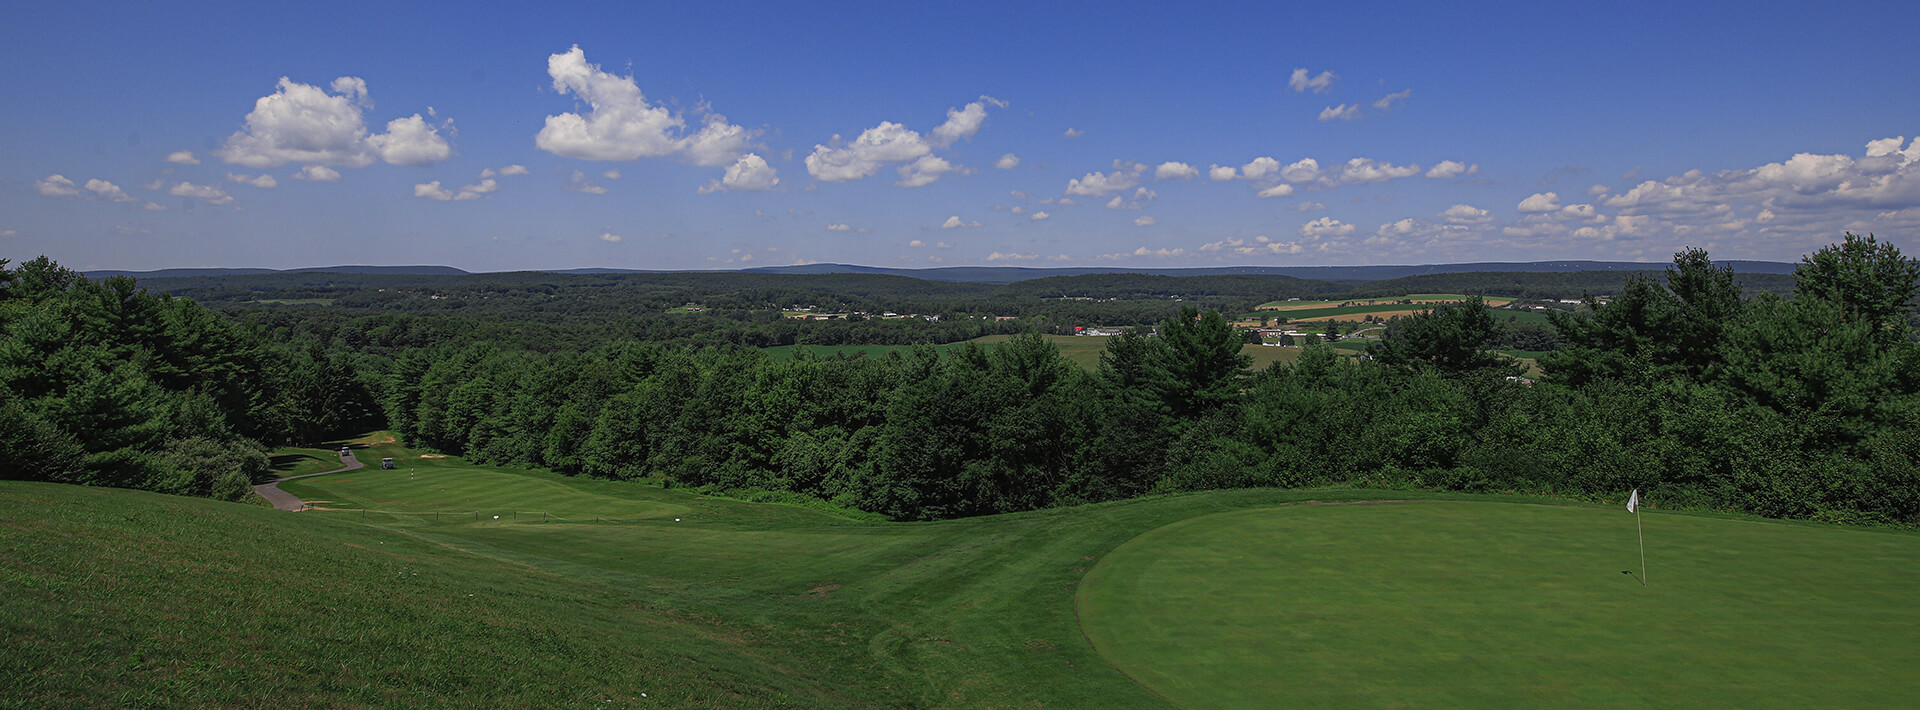 Hideaway Hills golf course panoramic